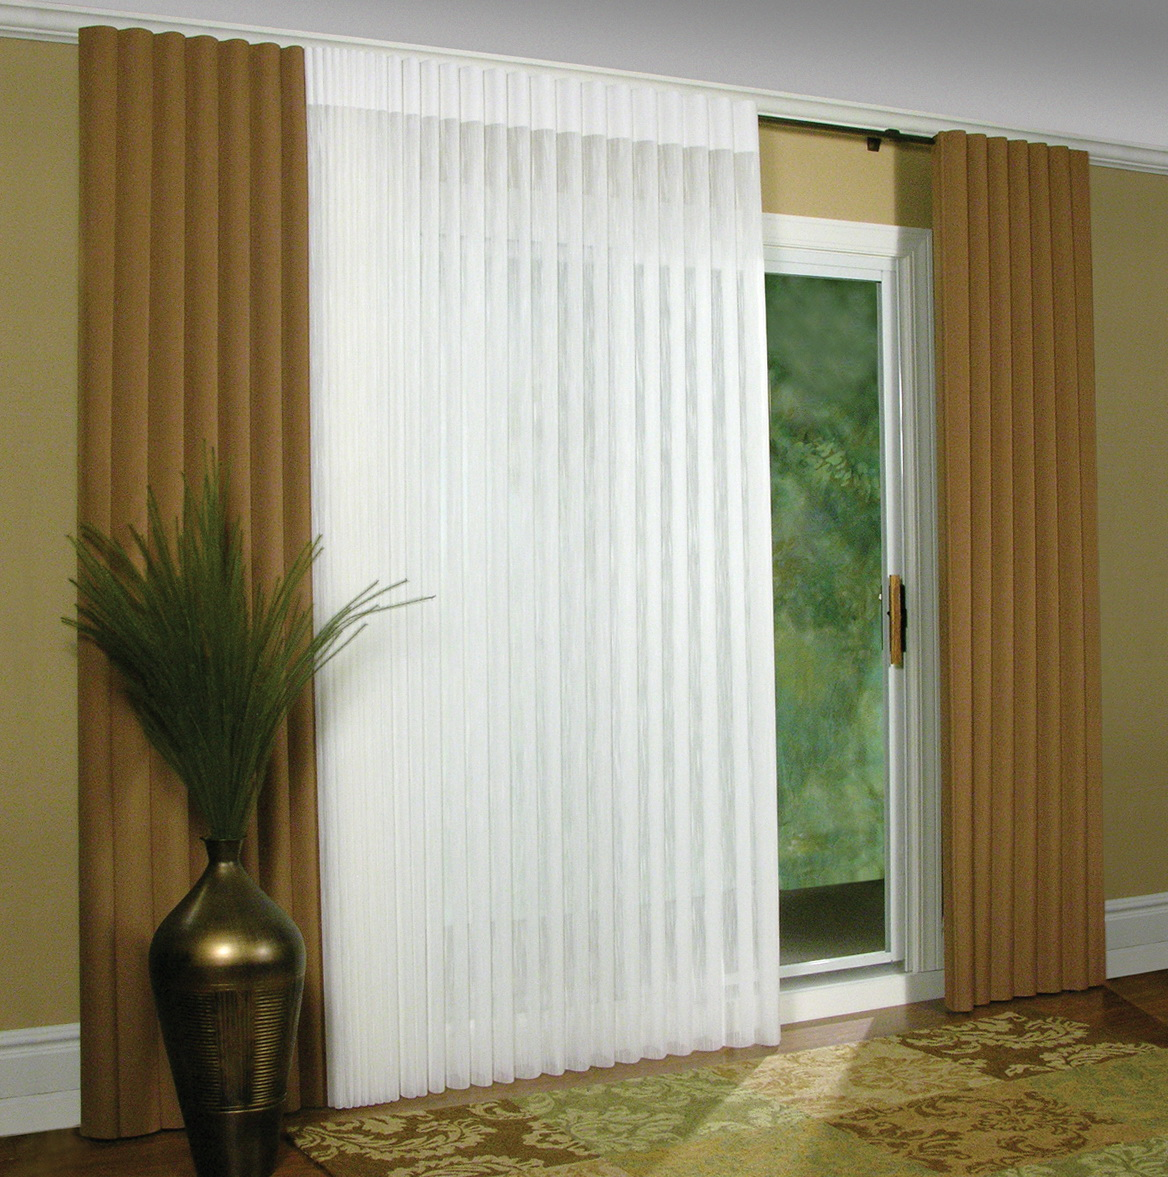 Thermal Front Door Curtains  Home Design Ideas. Replacing Garage Door Torsion Spring. Garage Tables. Garage Door Opener Amazon. 6 X 6 Roll Up Garage Door. French Doors Cost. Cadet Garage Heater. Home Depot Exterior French Doors. Solid Core Bifold Doors